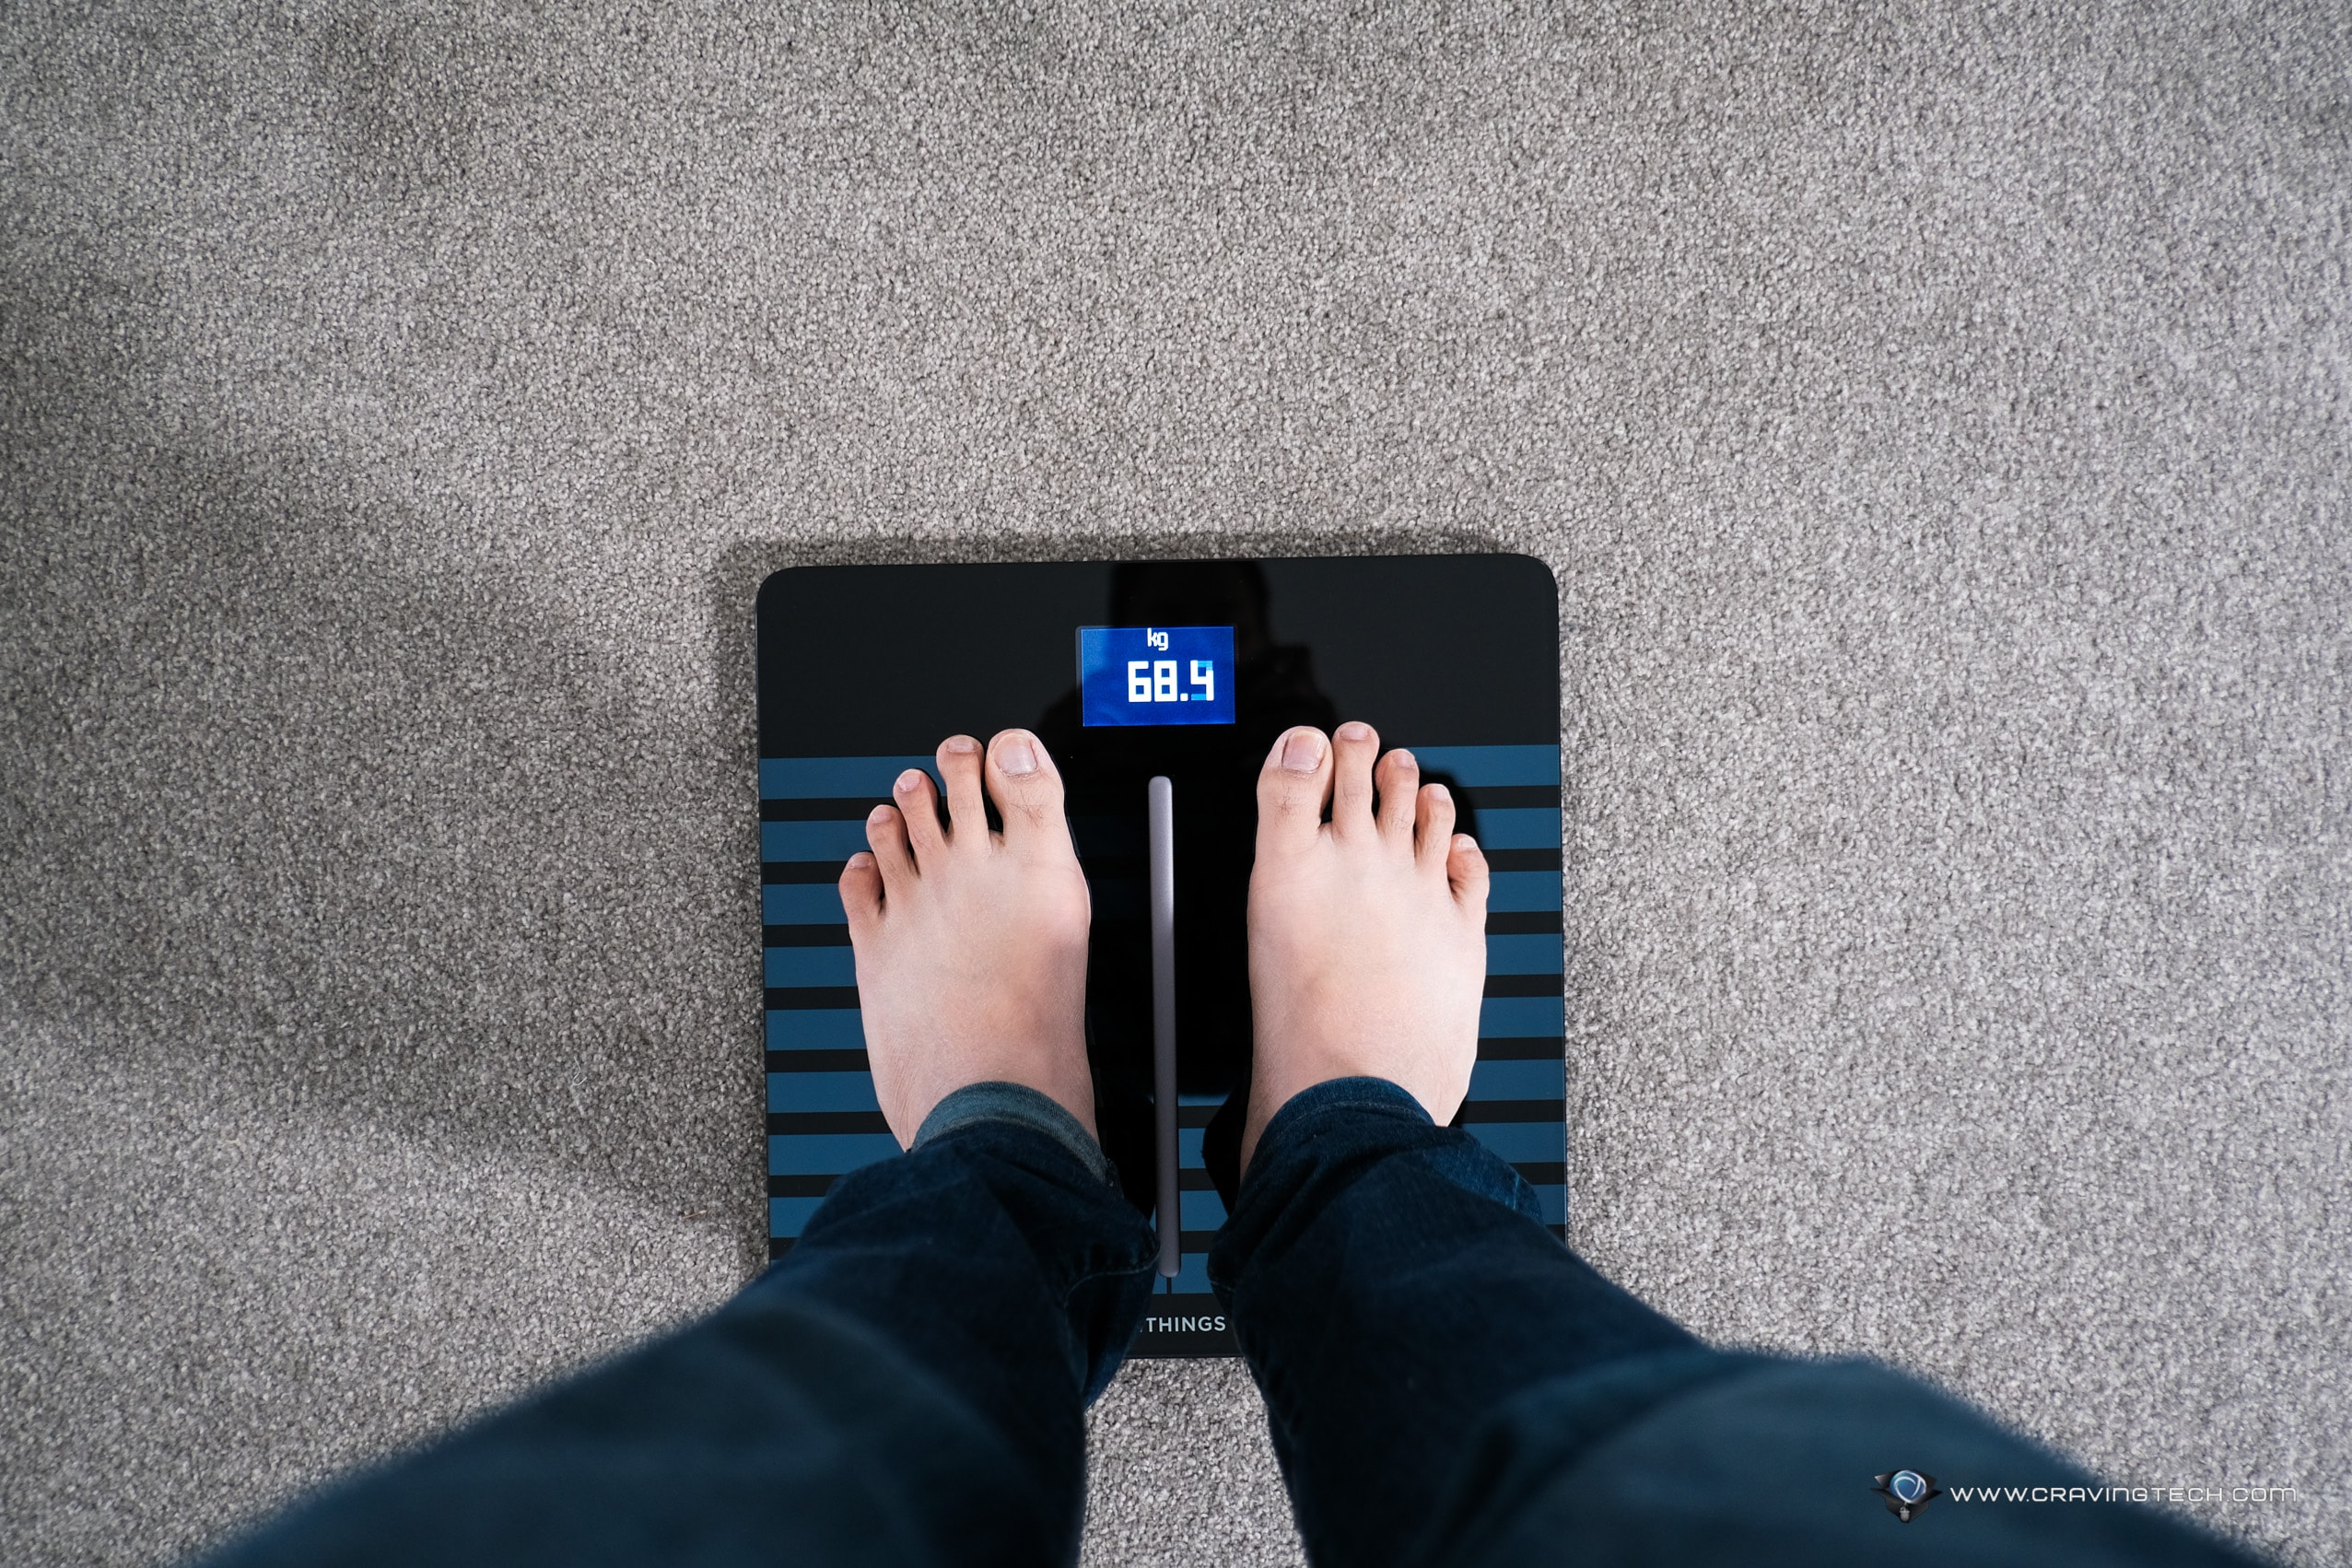 Step on this smart scale and check your heart health